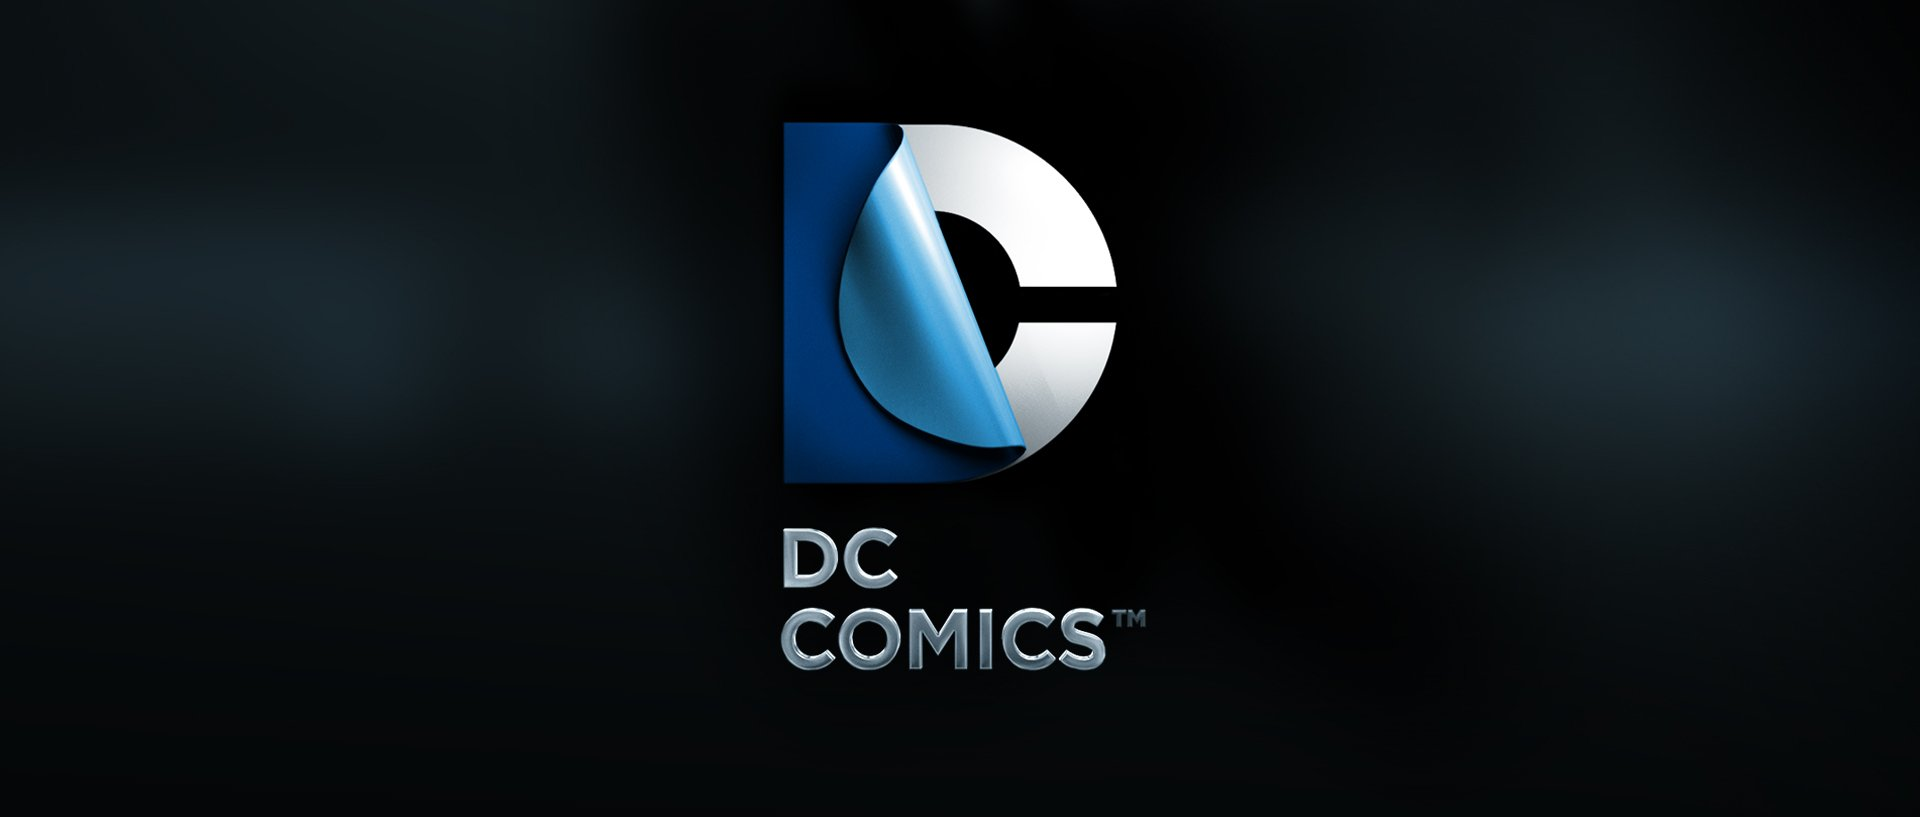 DC Comics Wallpaper And Background Image